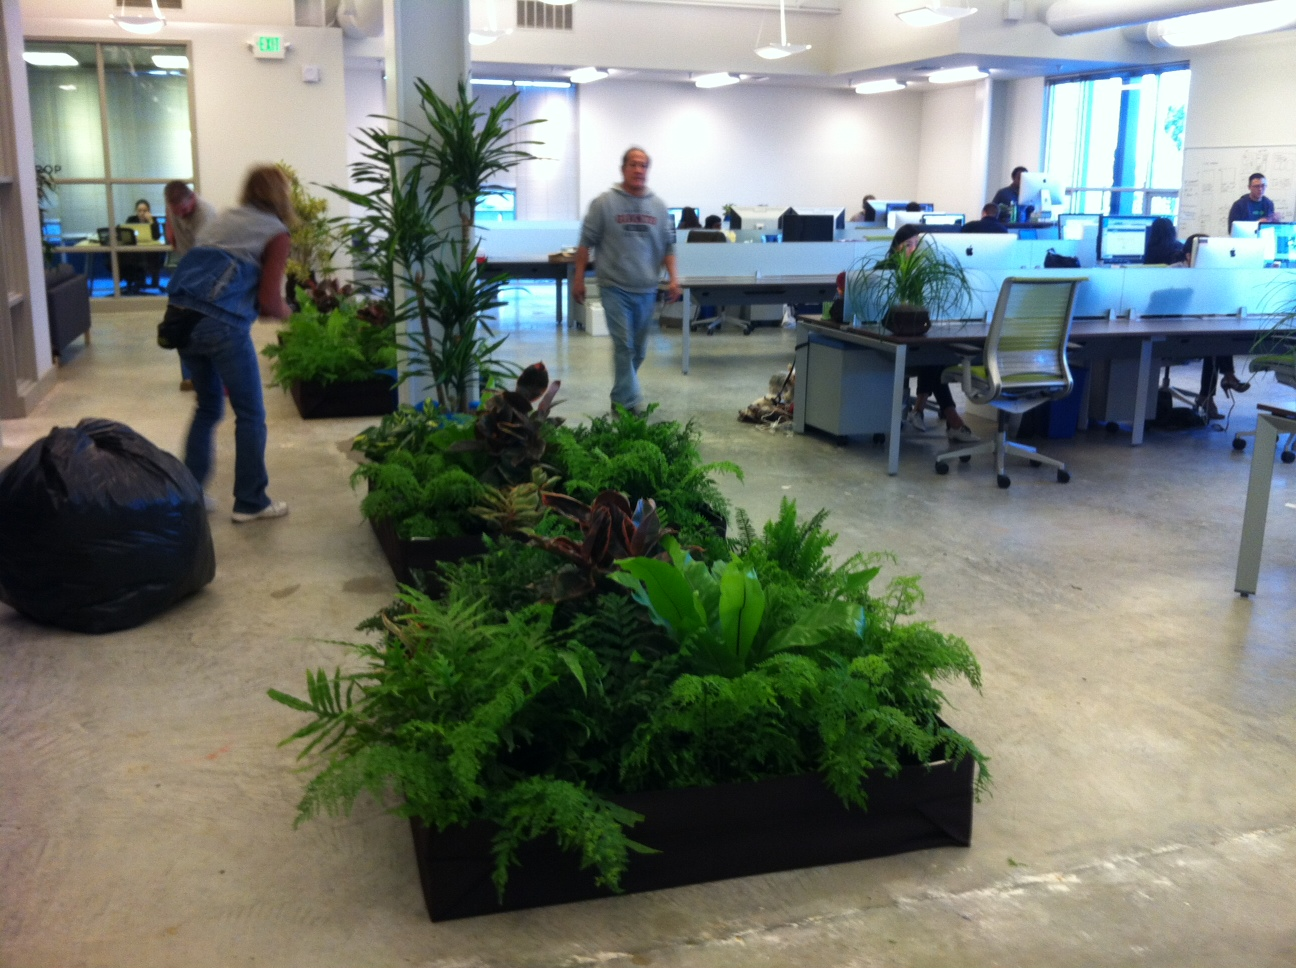 Great office work environments pasha sadri for Office plants no natural light